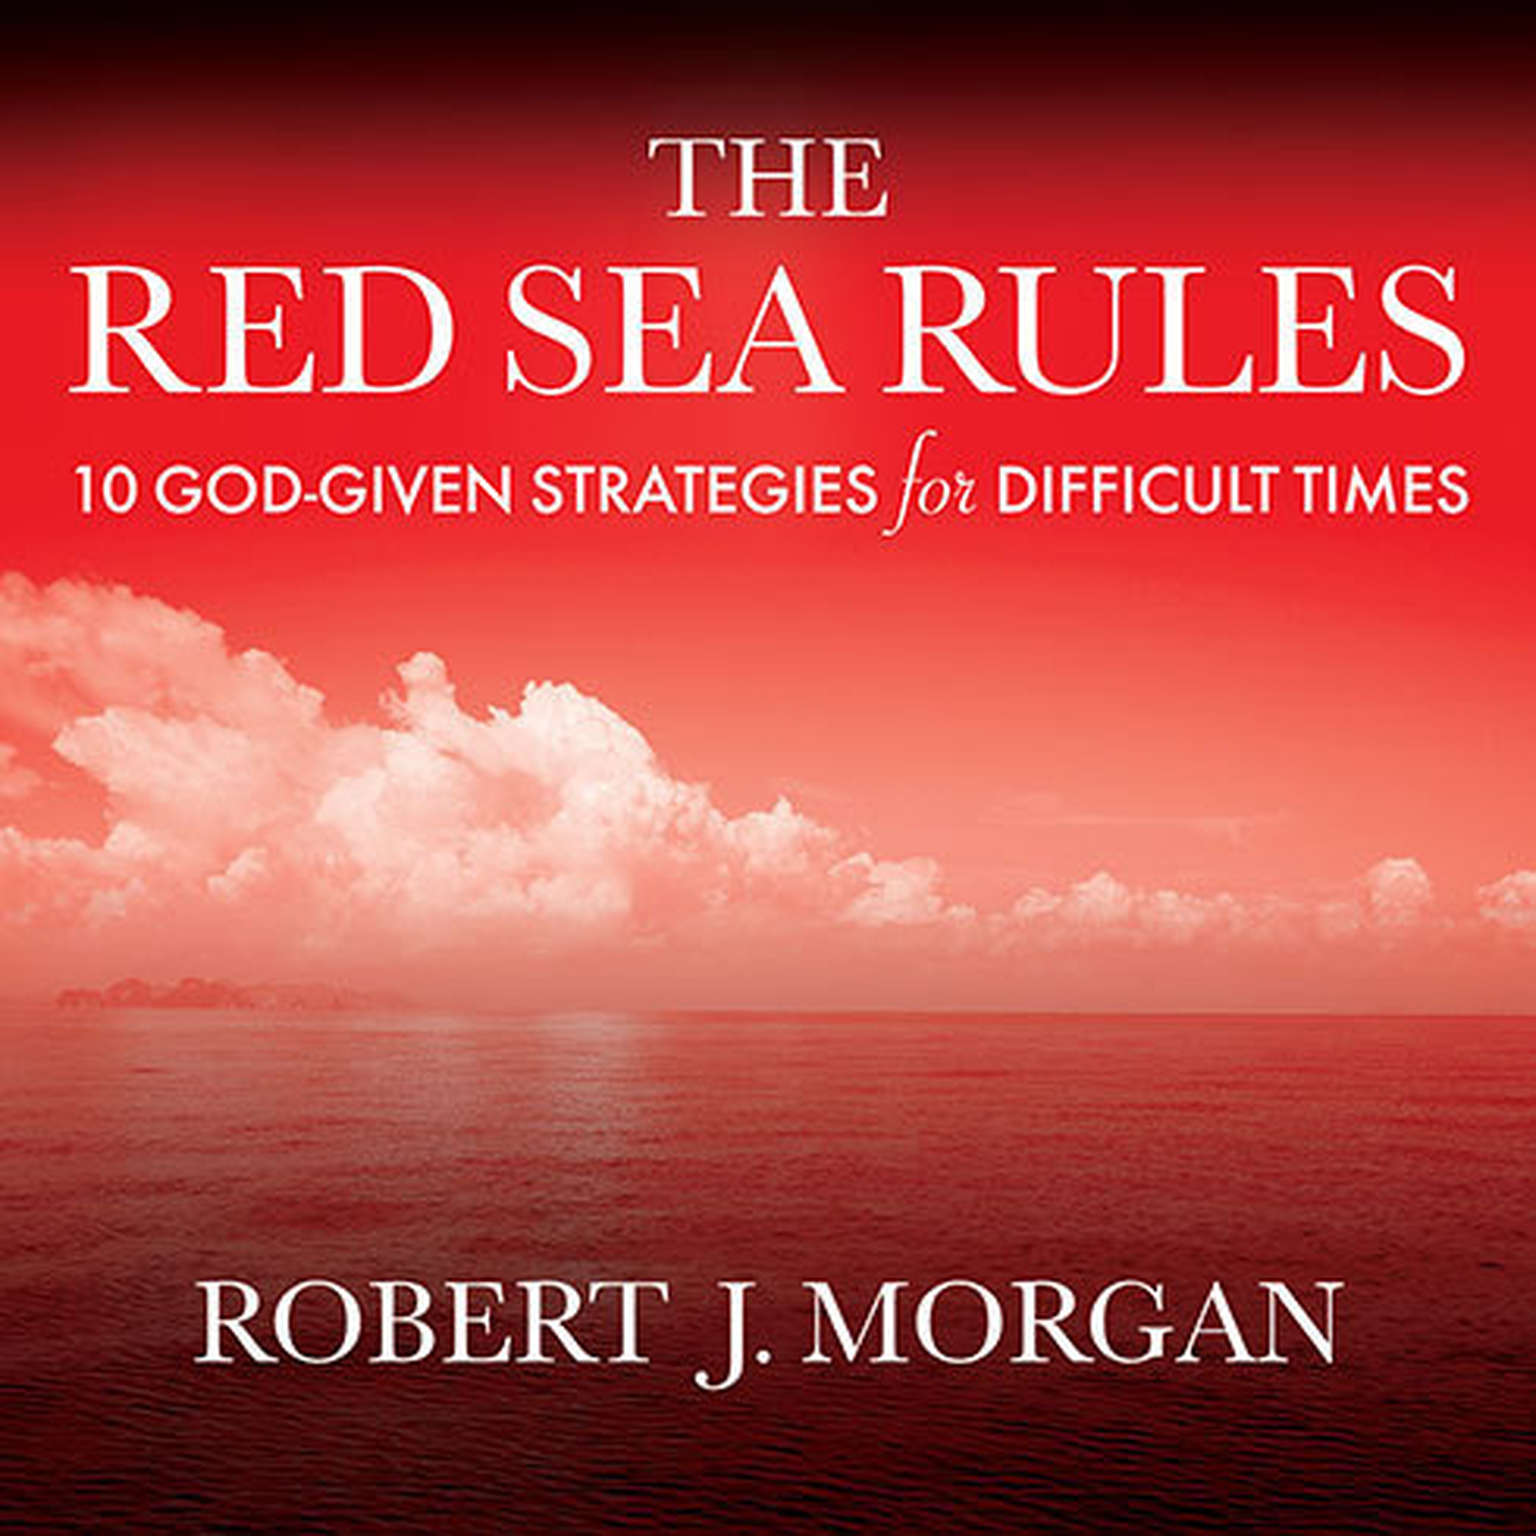 Printable The Red Sea Rules: 10 God-Given Strategies for Difficult Times Audiobook Cover Art